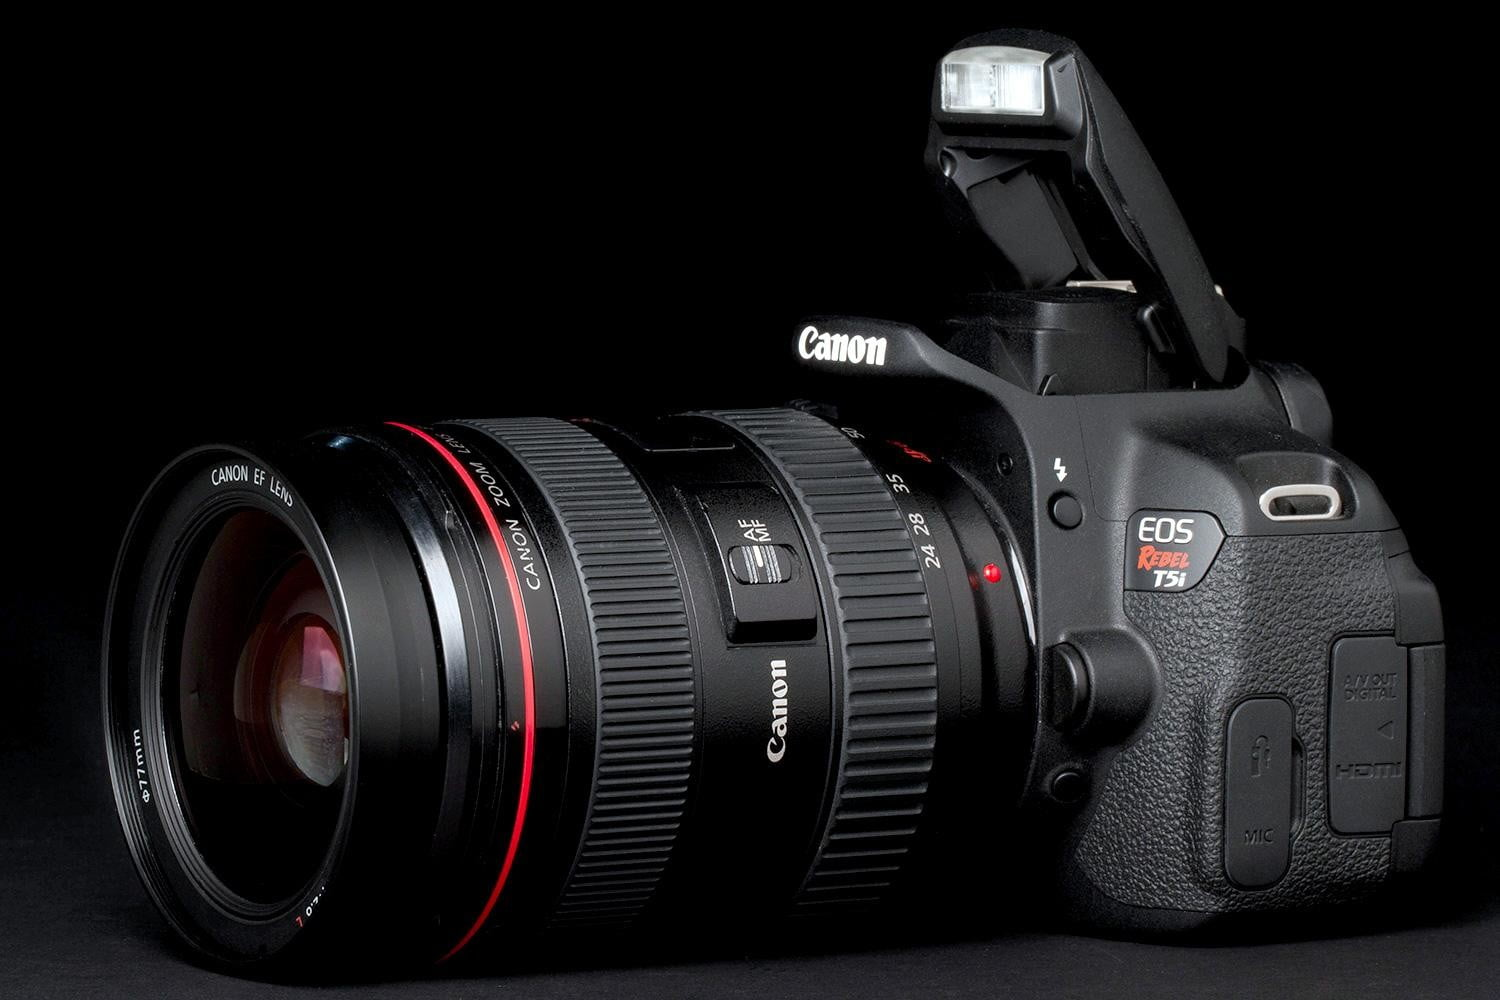 Canon EOS Rebel T5i review | Digital Trends